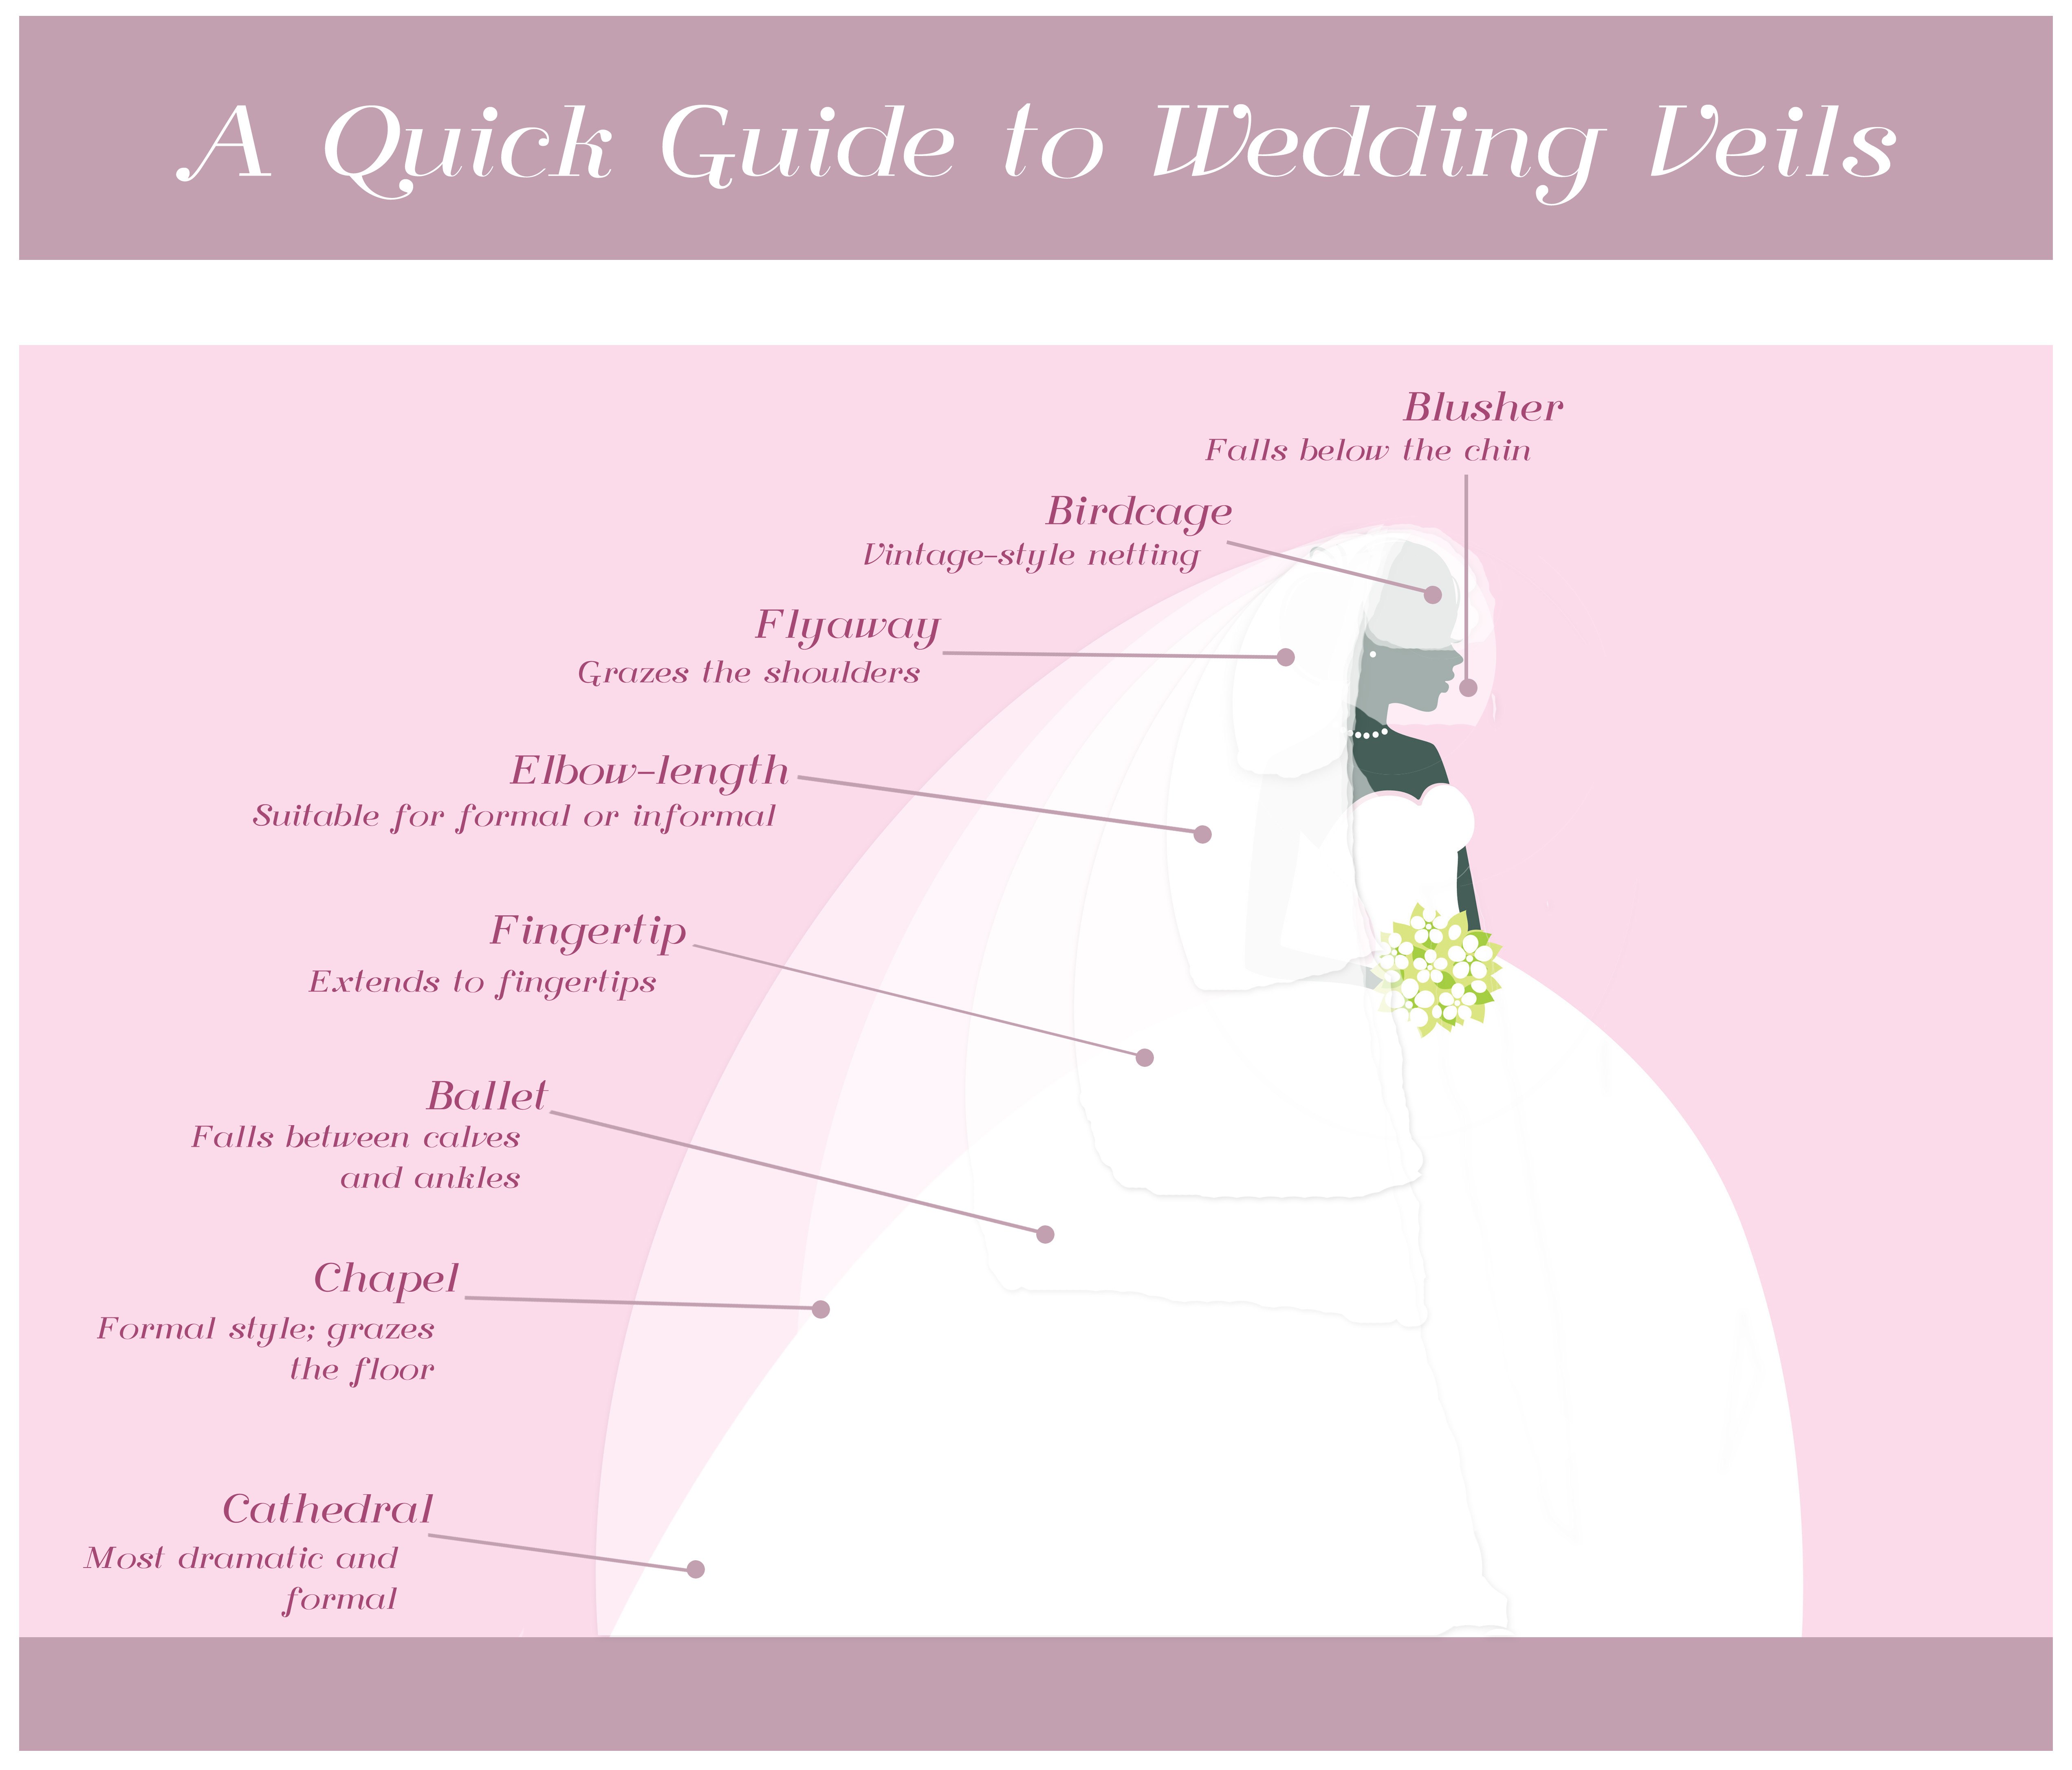 Parts Of A Wedding.Wedding Veils The Basics New Orleans Wedding Planners